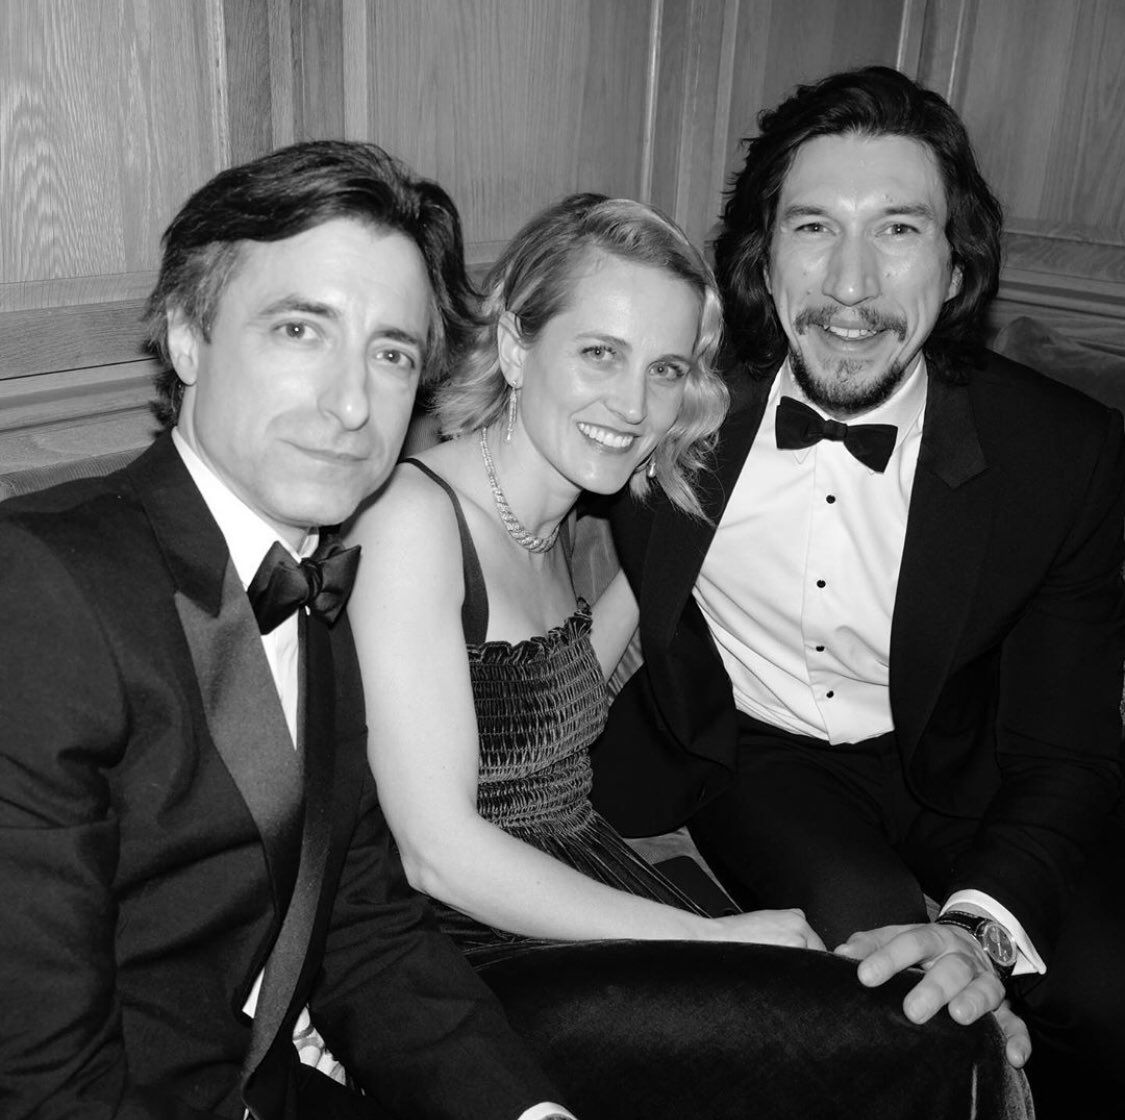 Pin by emily on star wars cast in 2020 Adam driver, Adam